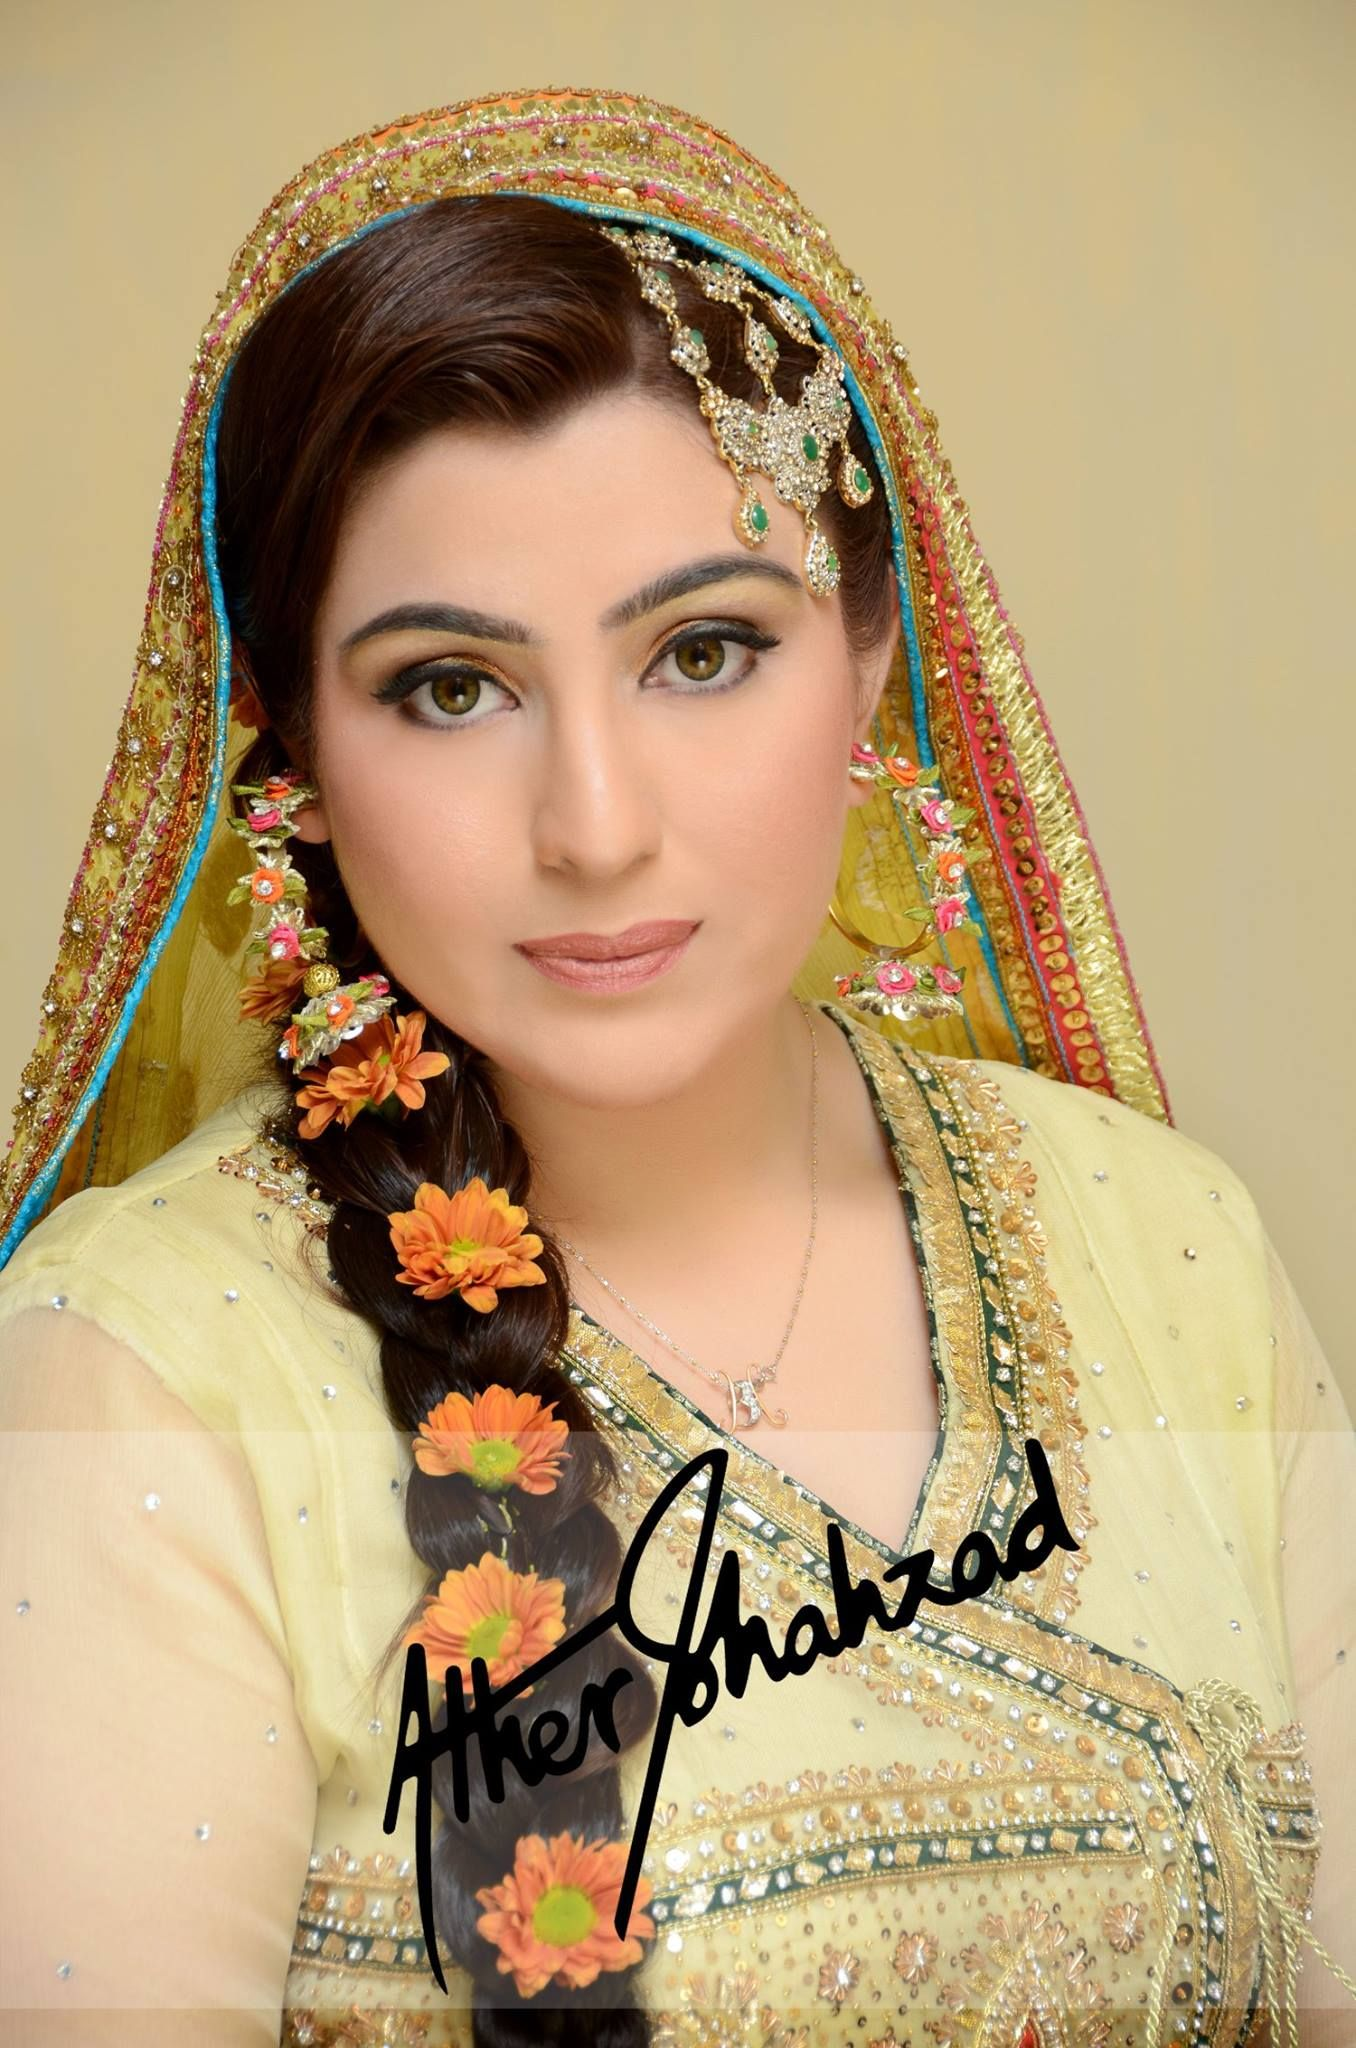 Mehndi bride ,makeup and photography by ather shahzad